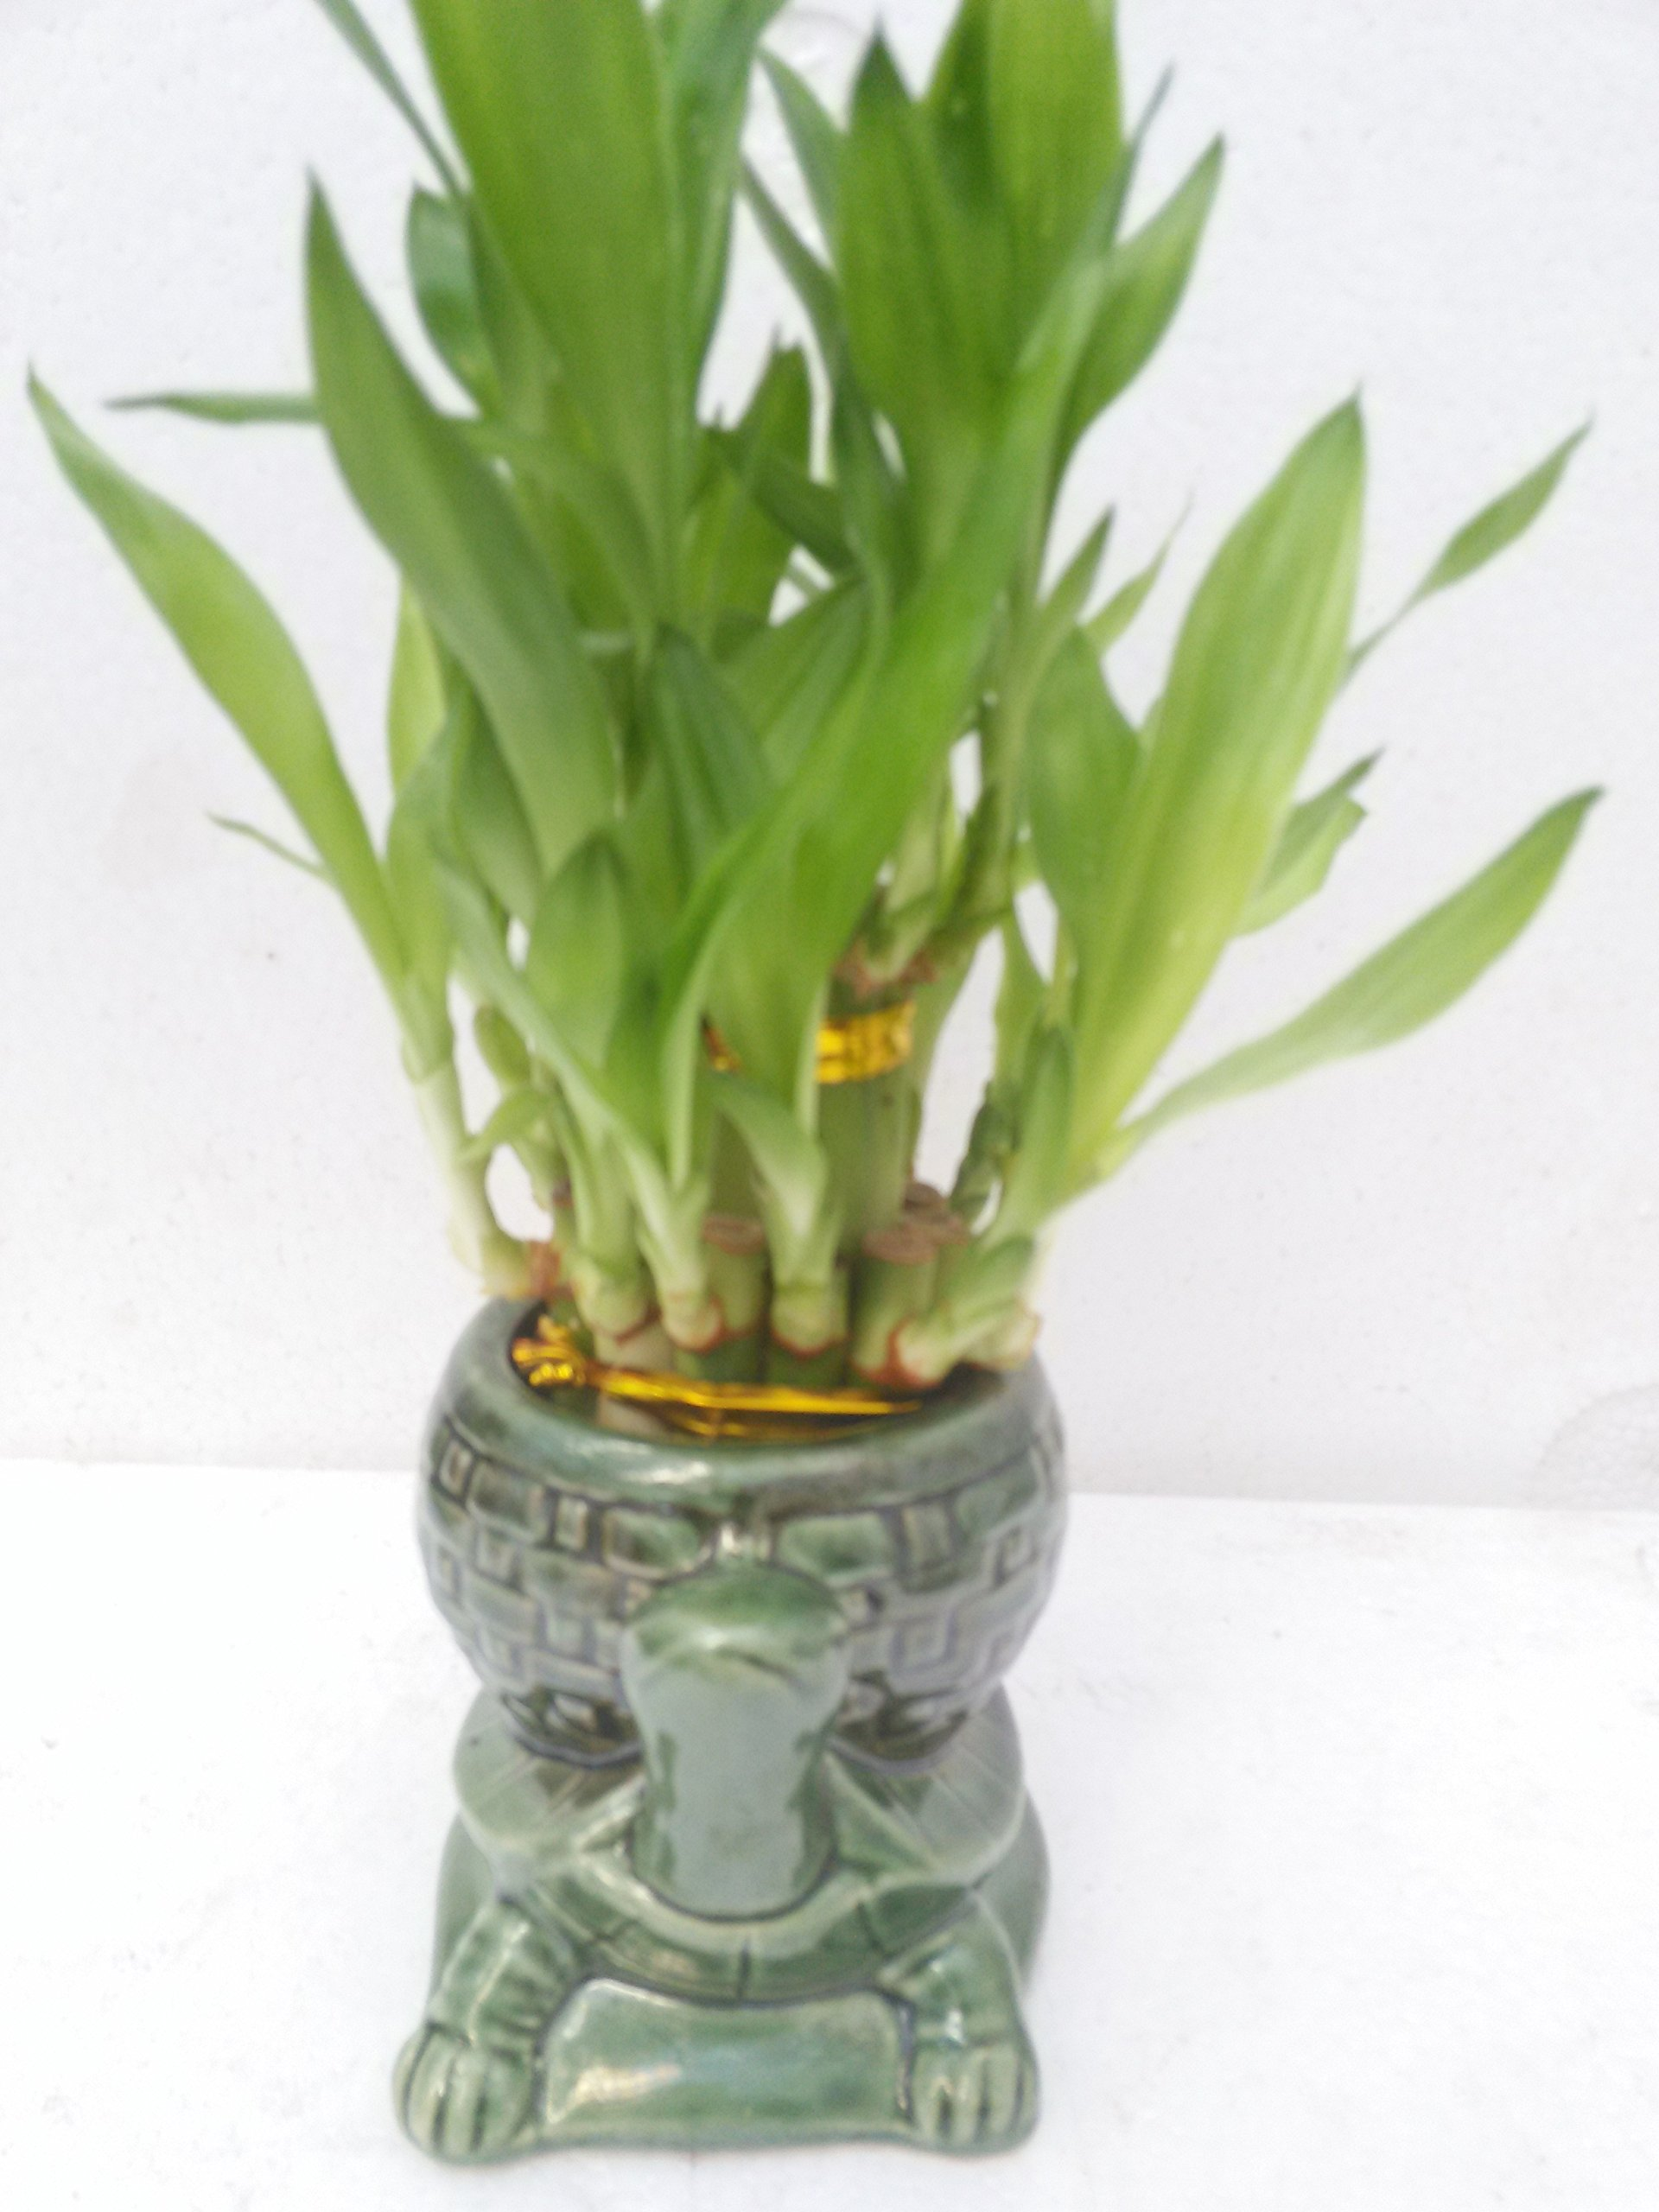 jmbamboo-Two Tiered Lucky Bamboo Arrangement Turtle Family Favor-from jmbamboo